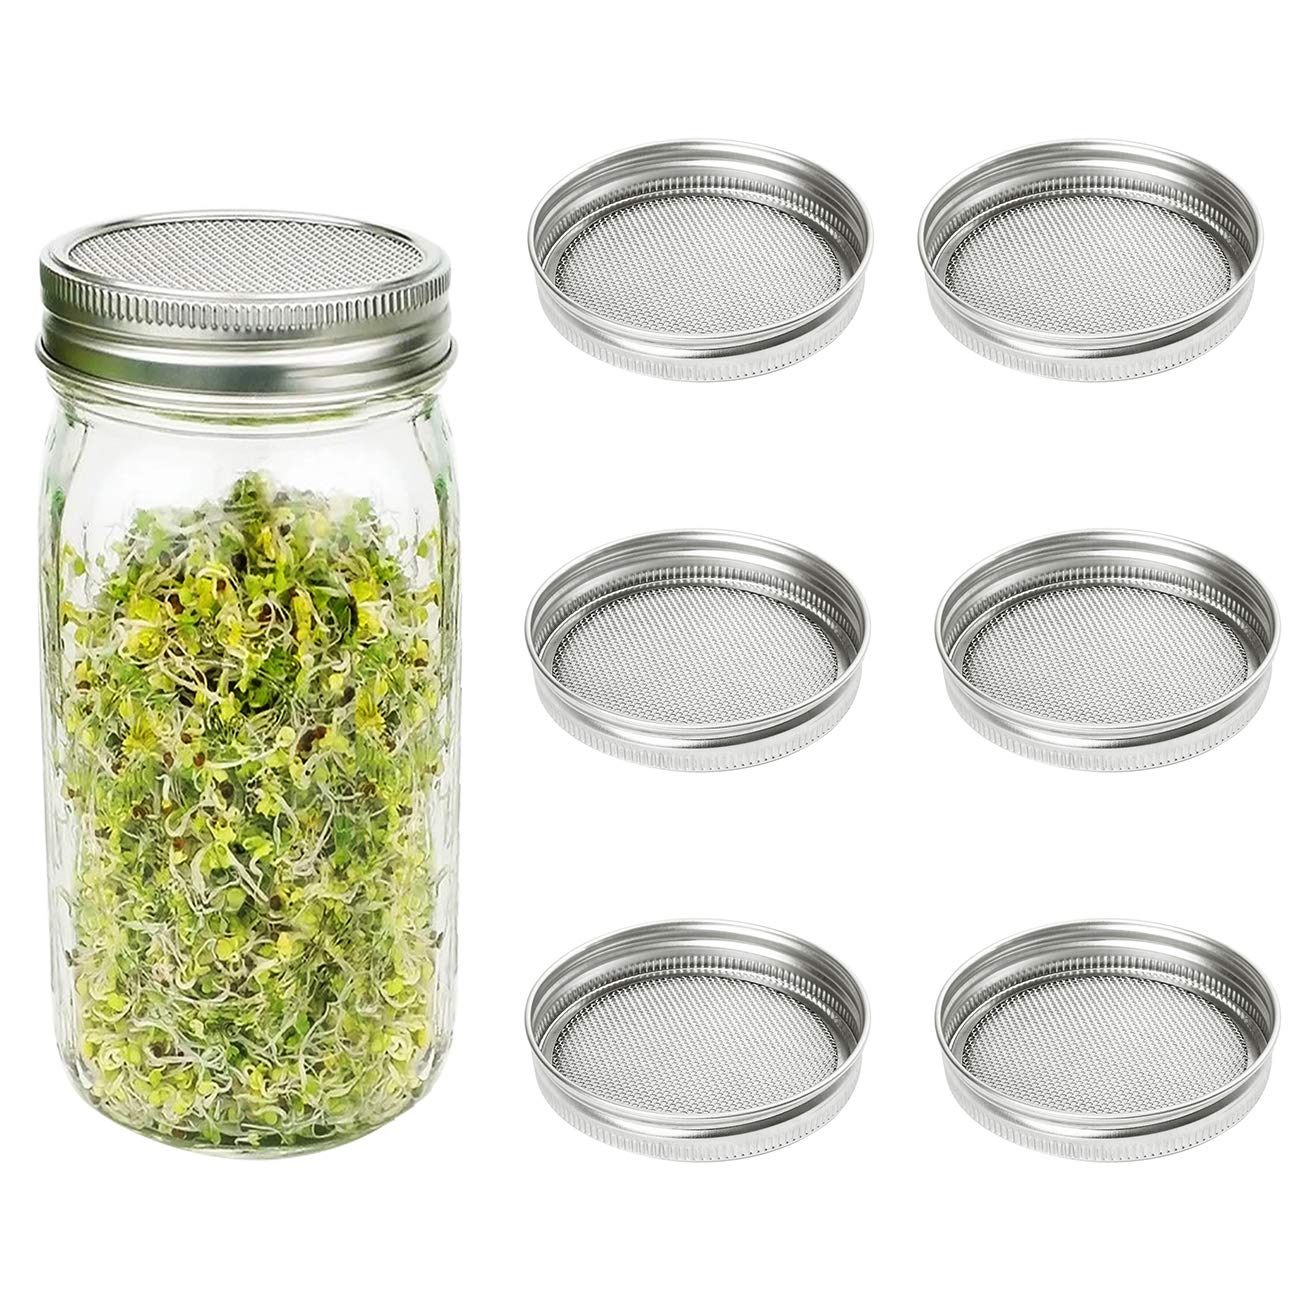 CUSFULL 6 Pack Sprouting Lids for Wide Mouth Mason Jars -Stainless Steel Strainer Lid for Canning Jars and Seed Sprouting Screen by CUSFULL (Image #1)